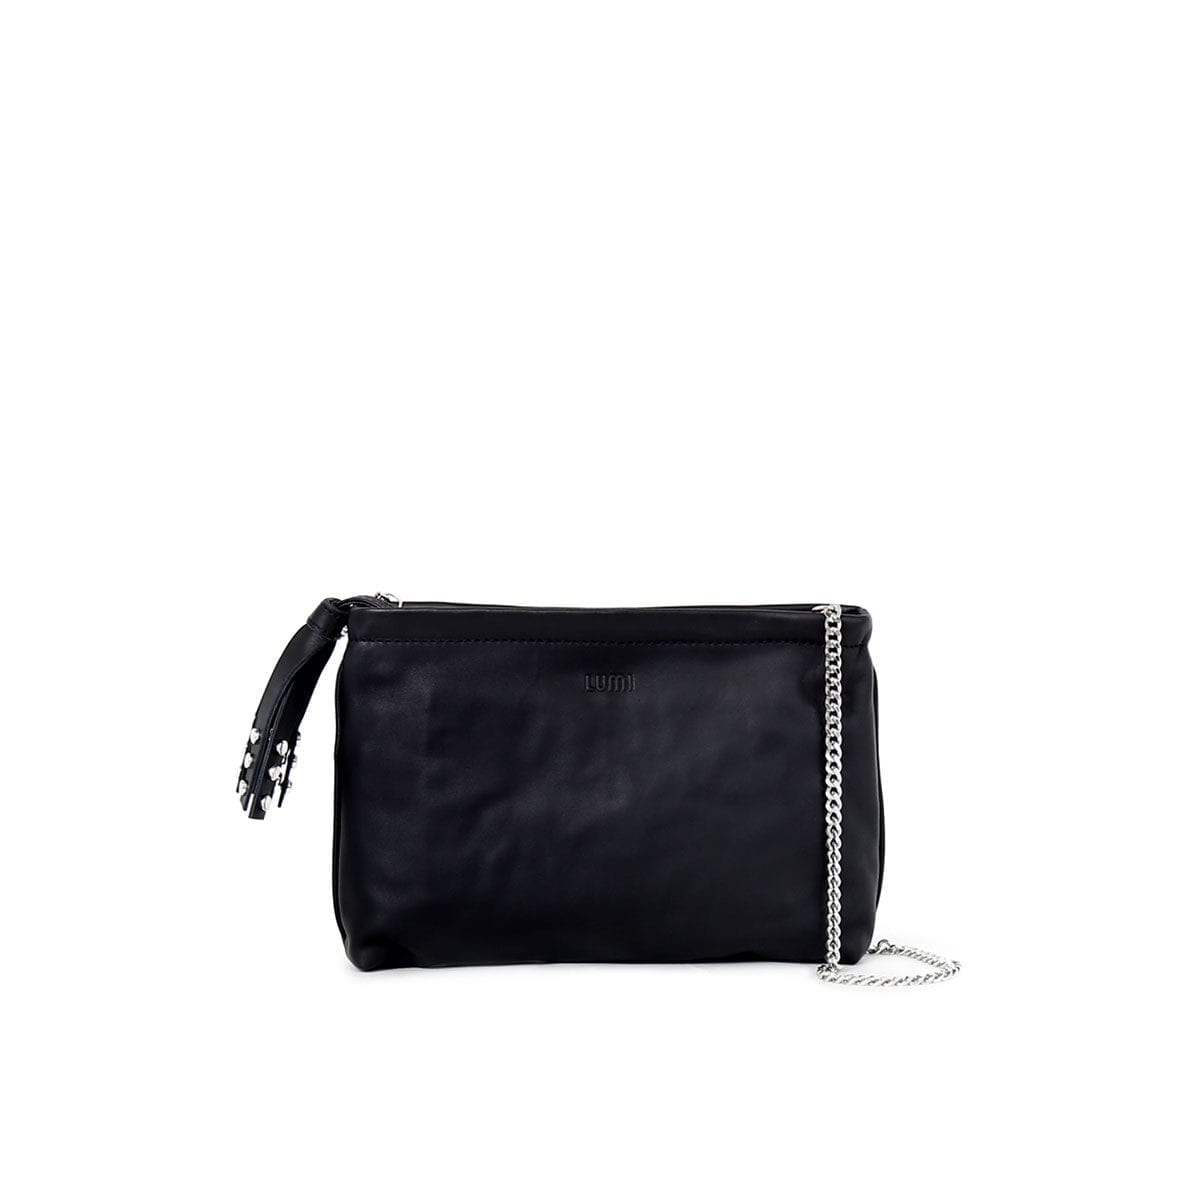 Tamara T-Bag in black converts nicely from day to night.